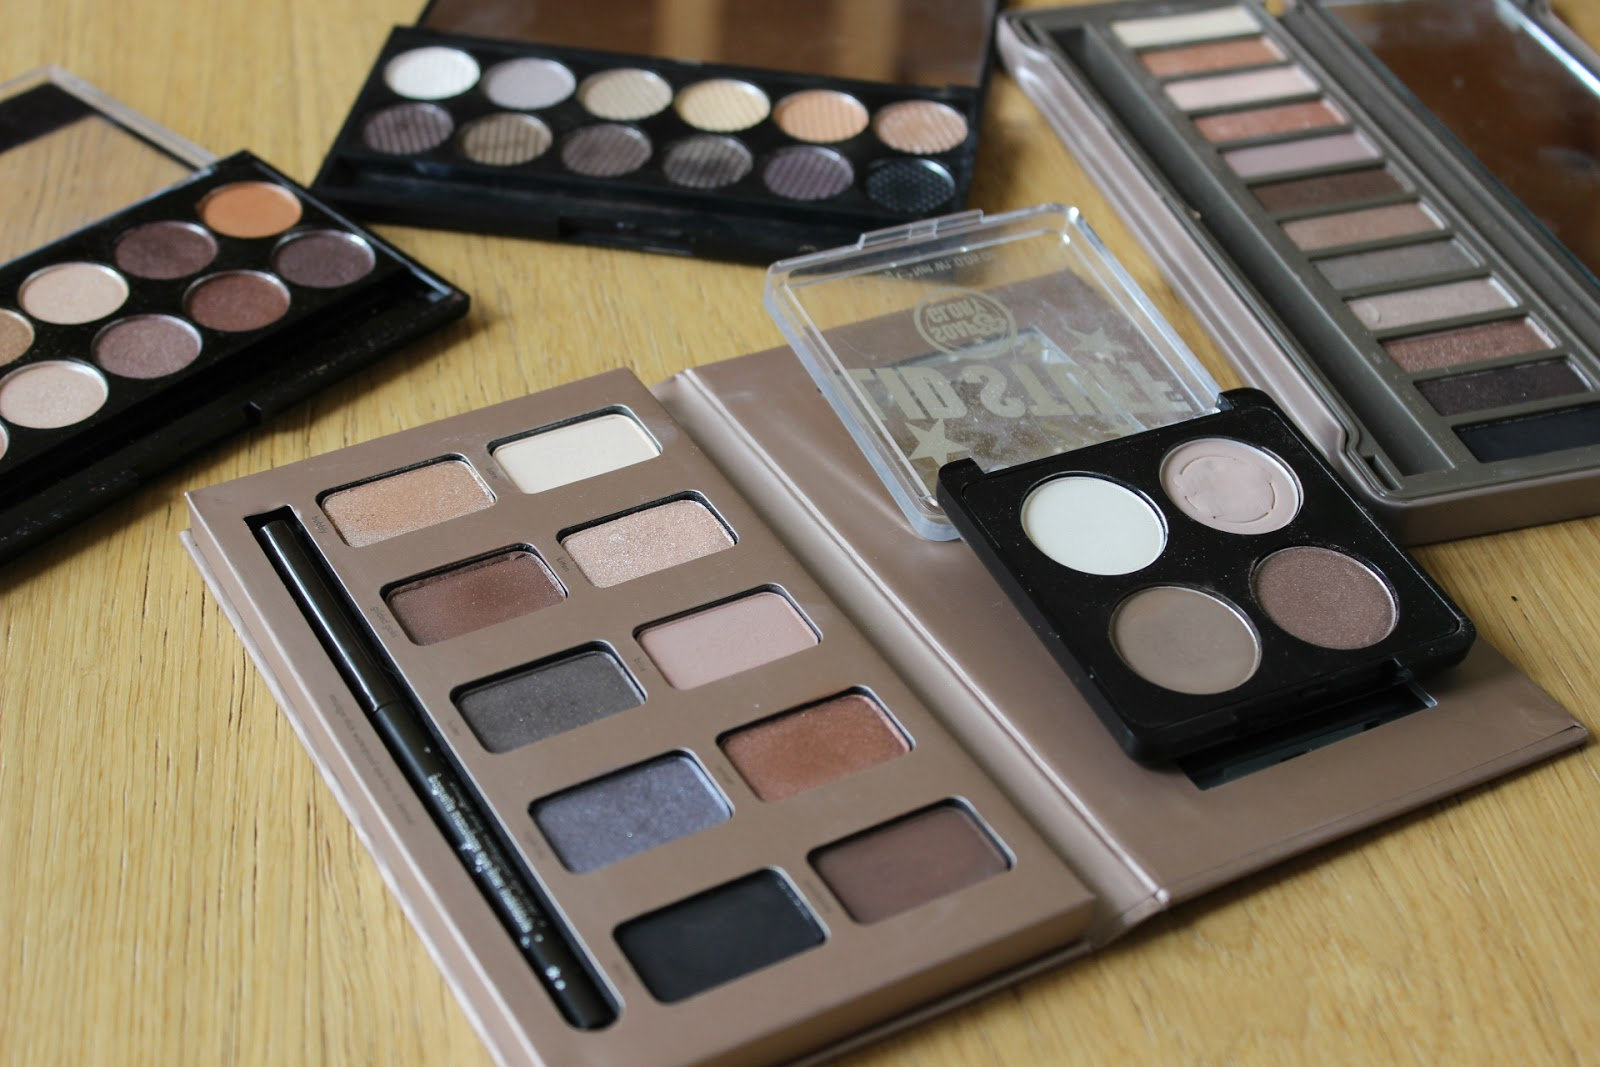 Sleek, Urban decay, mua, stila and soap of glory palettes.